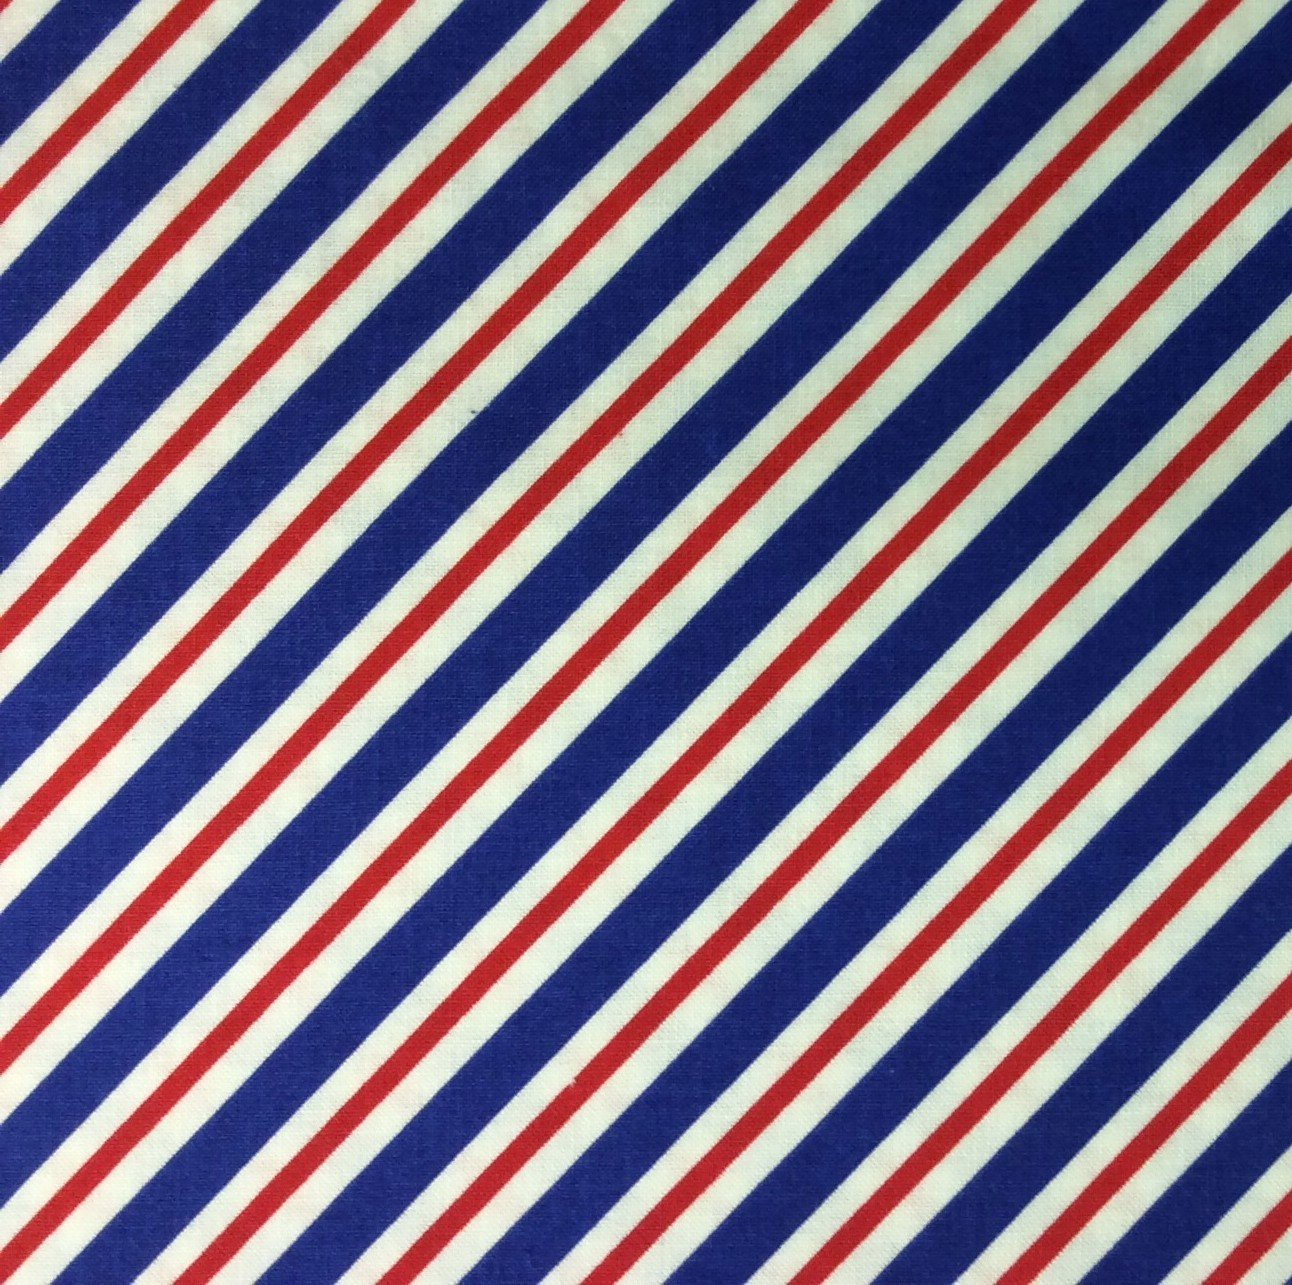 RB60 Postal Stripe Red White Blue Patriotic America USA Quilting ...